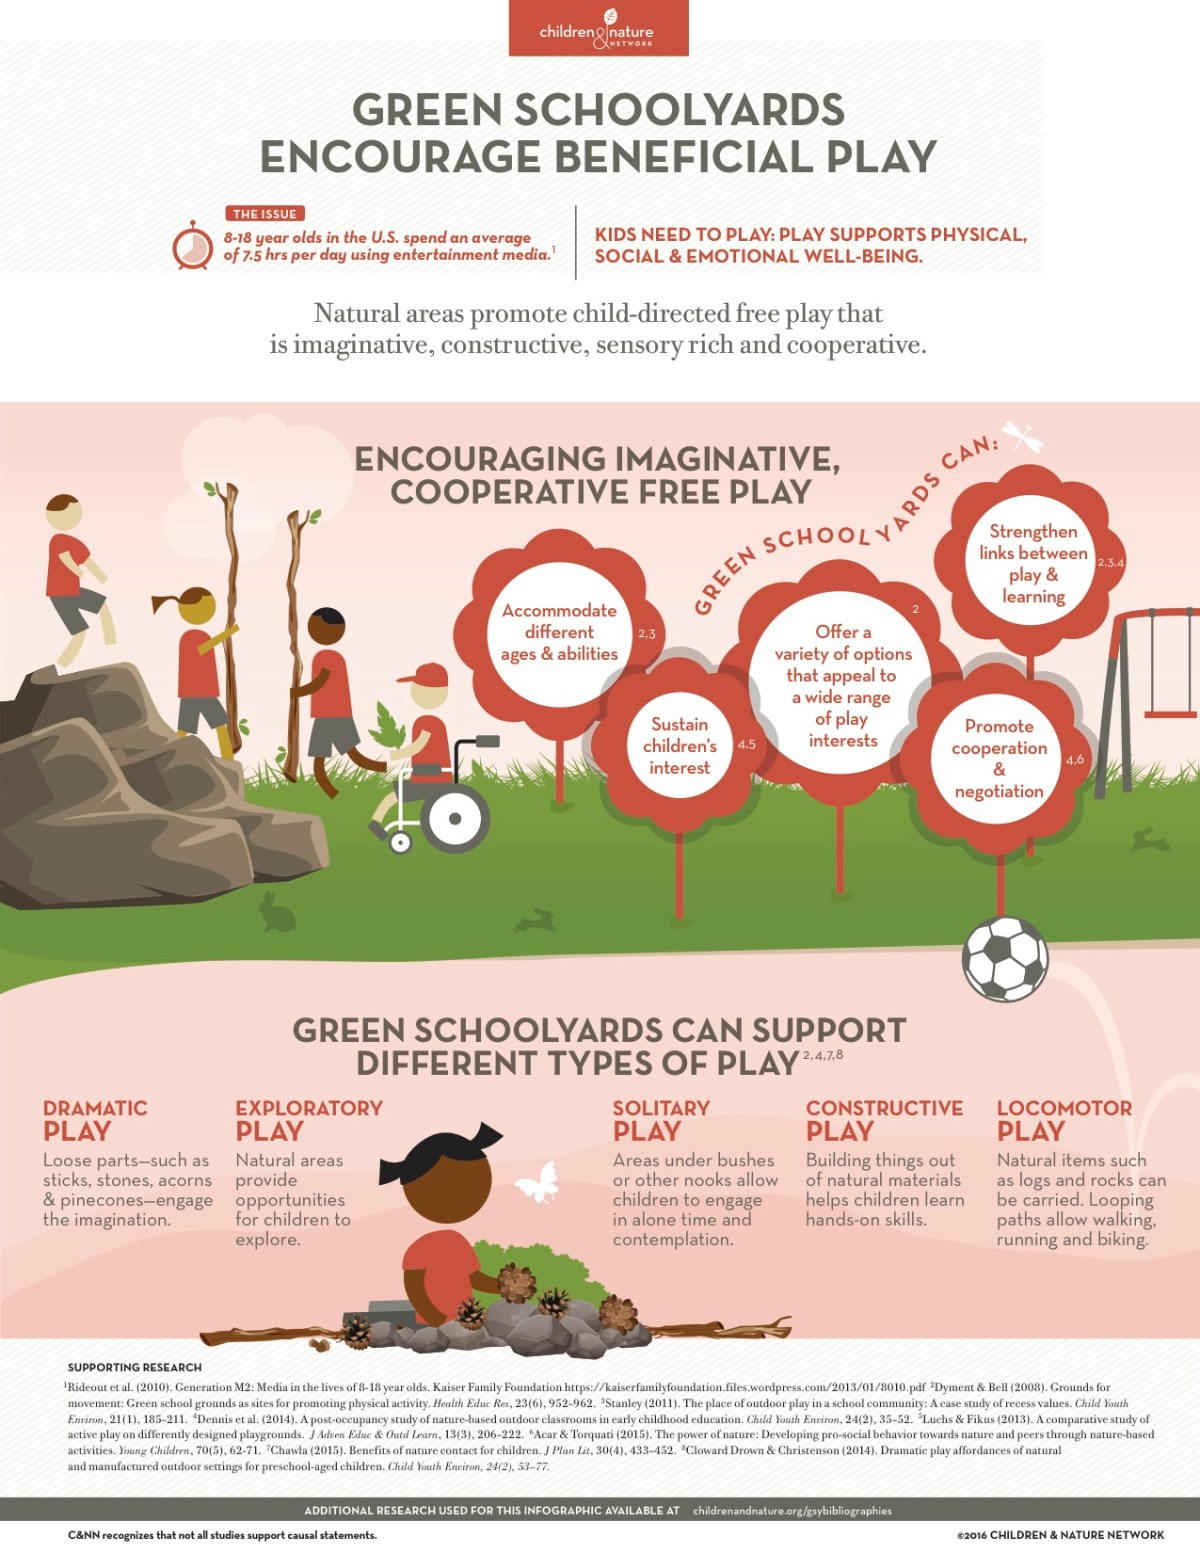 Green Schoolyards and Beneficial Play